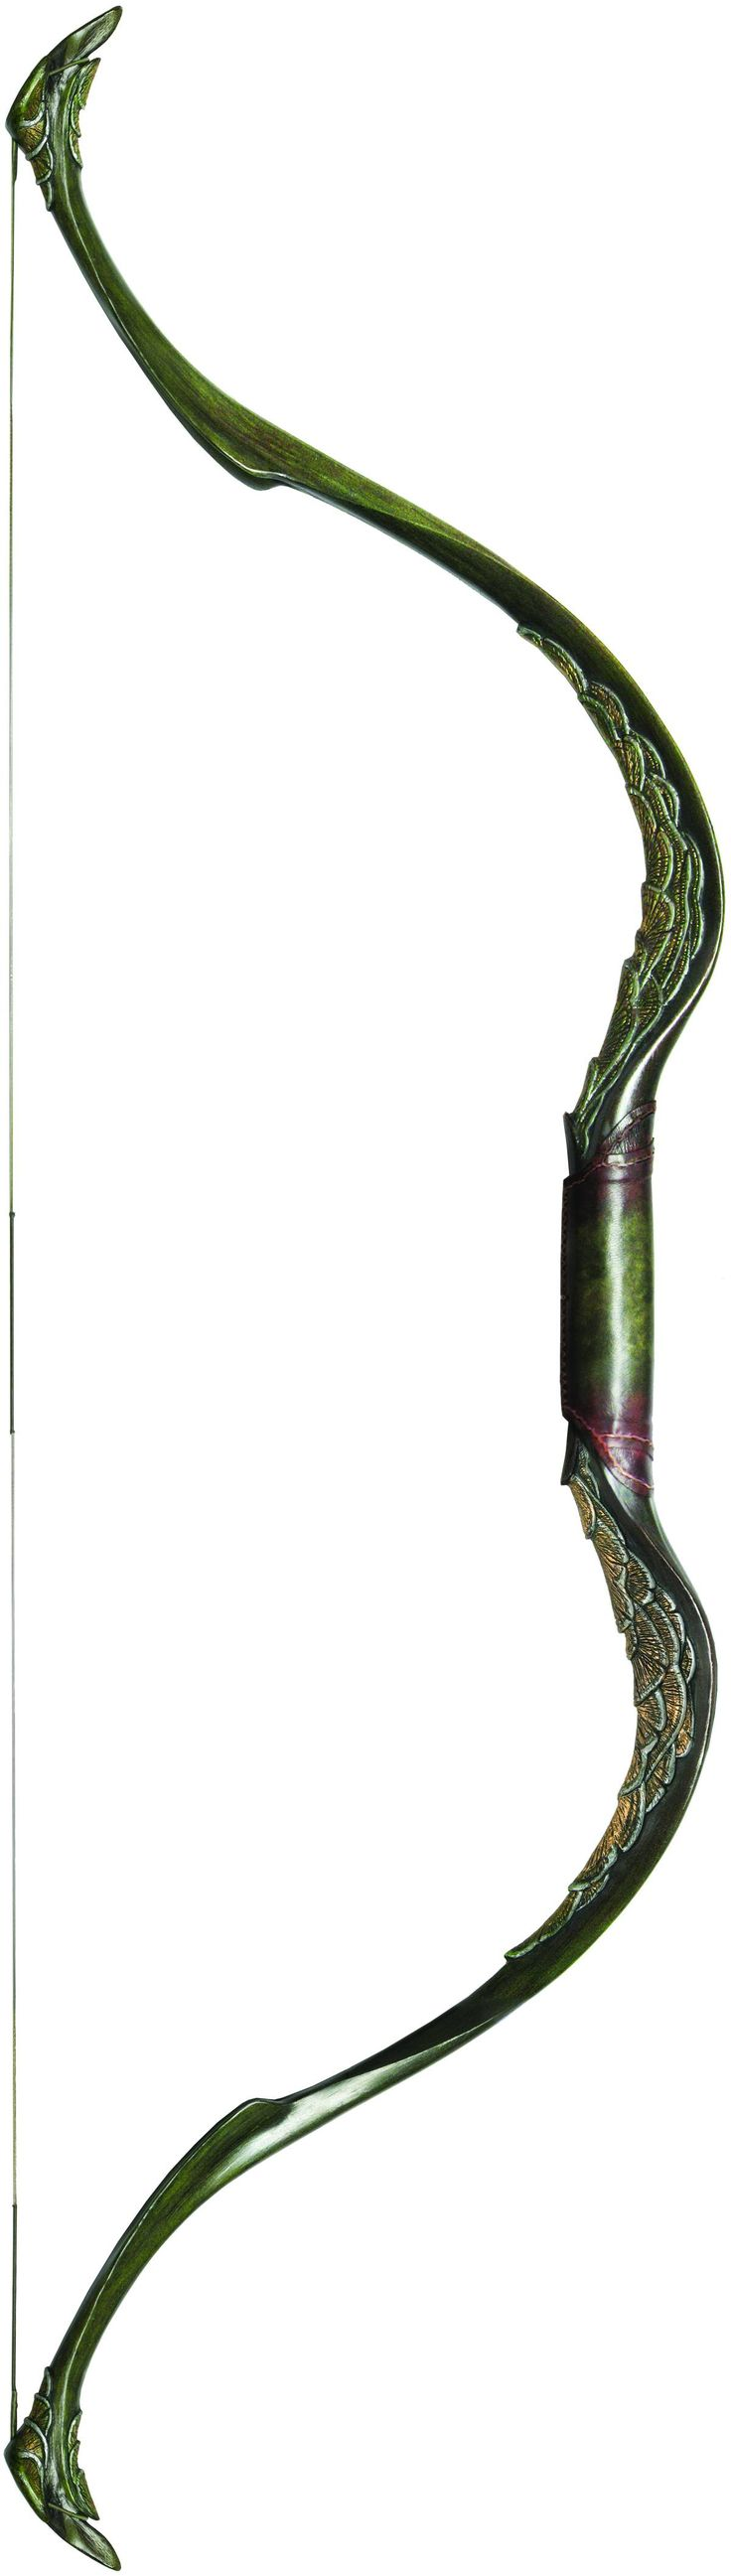 This bow is long and recurves back towards the archer. It's made of a special material that is super light and strong, it has leaf engravings on it and looks like it came right out of a fantasy story.